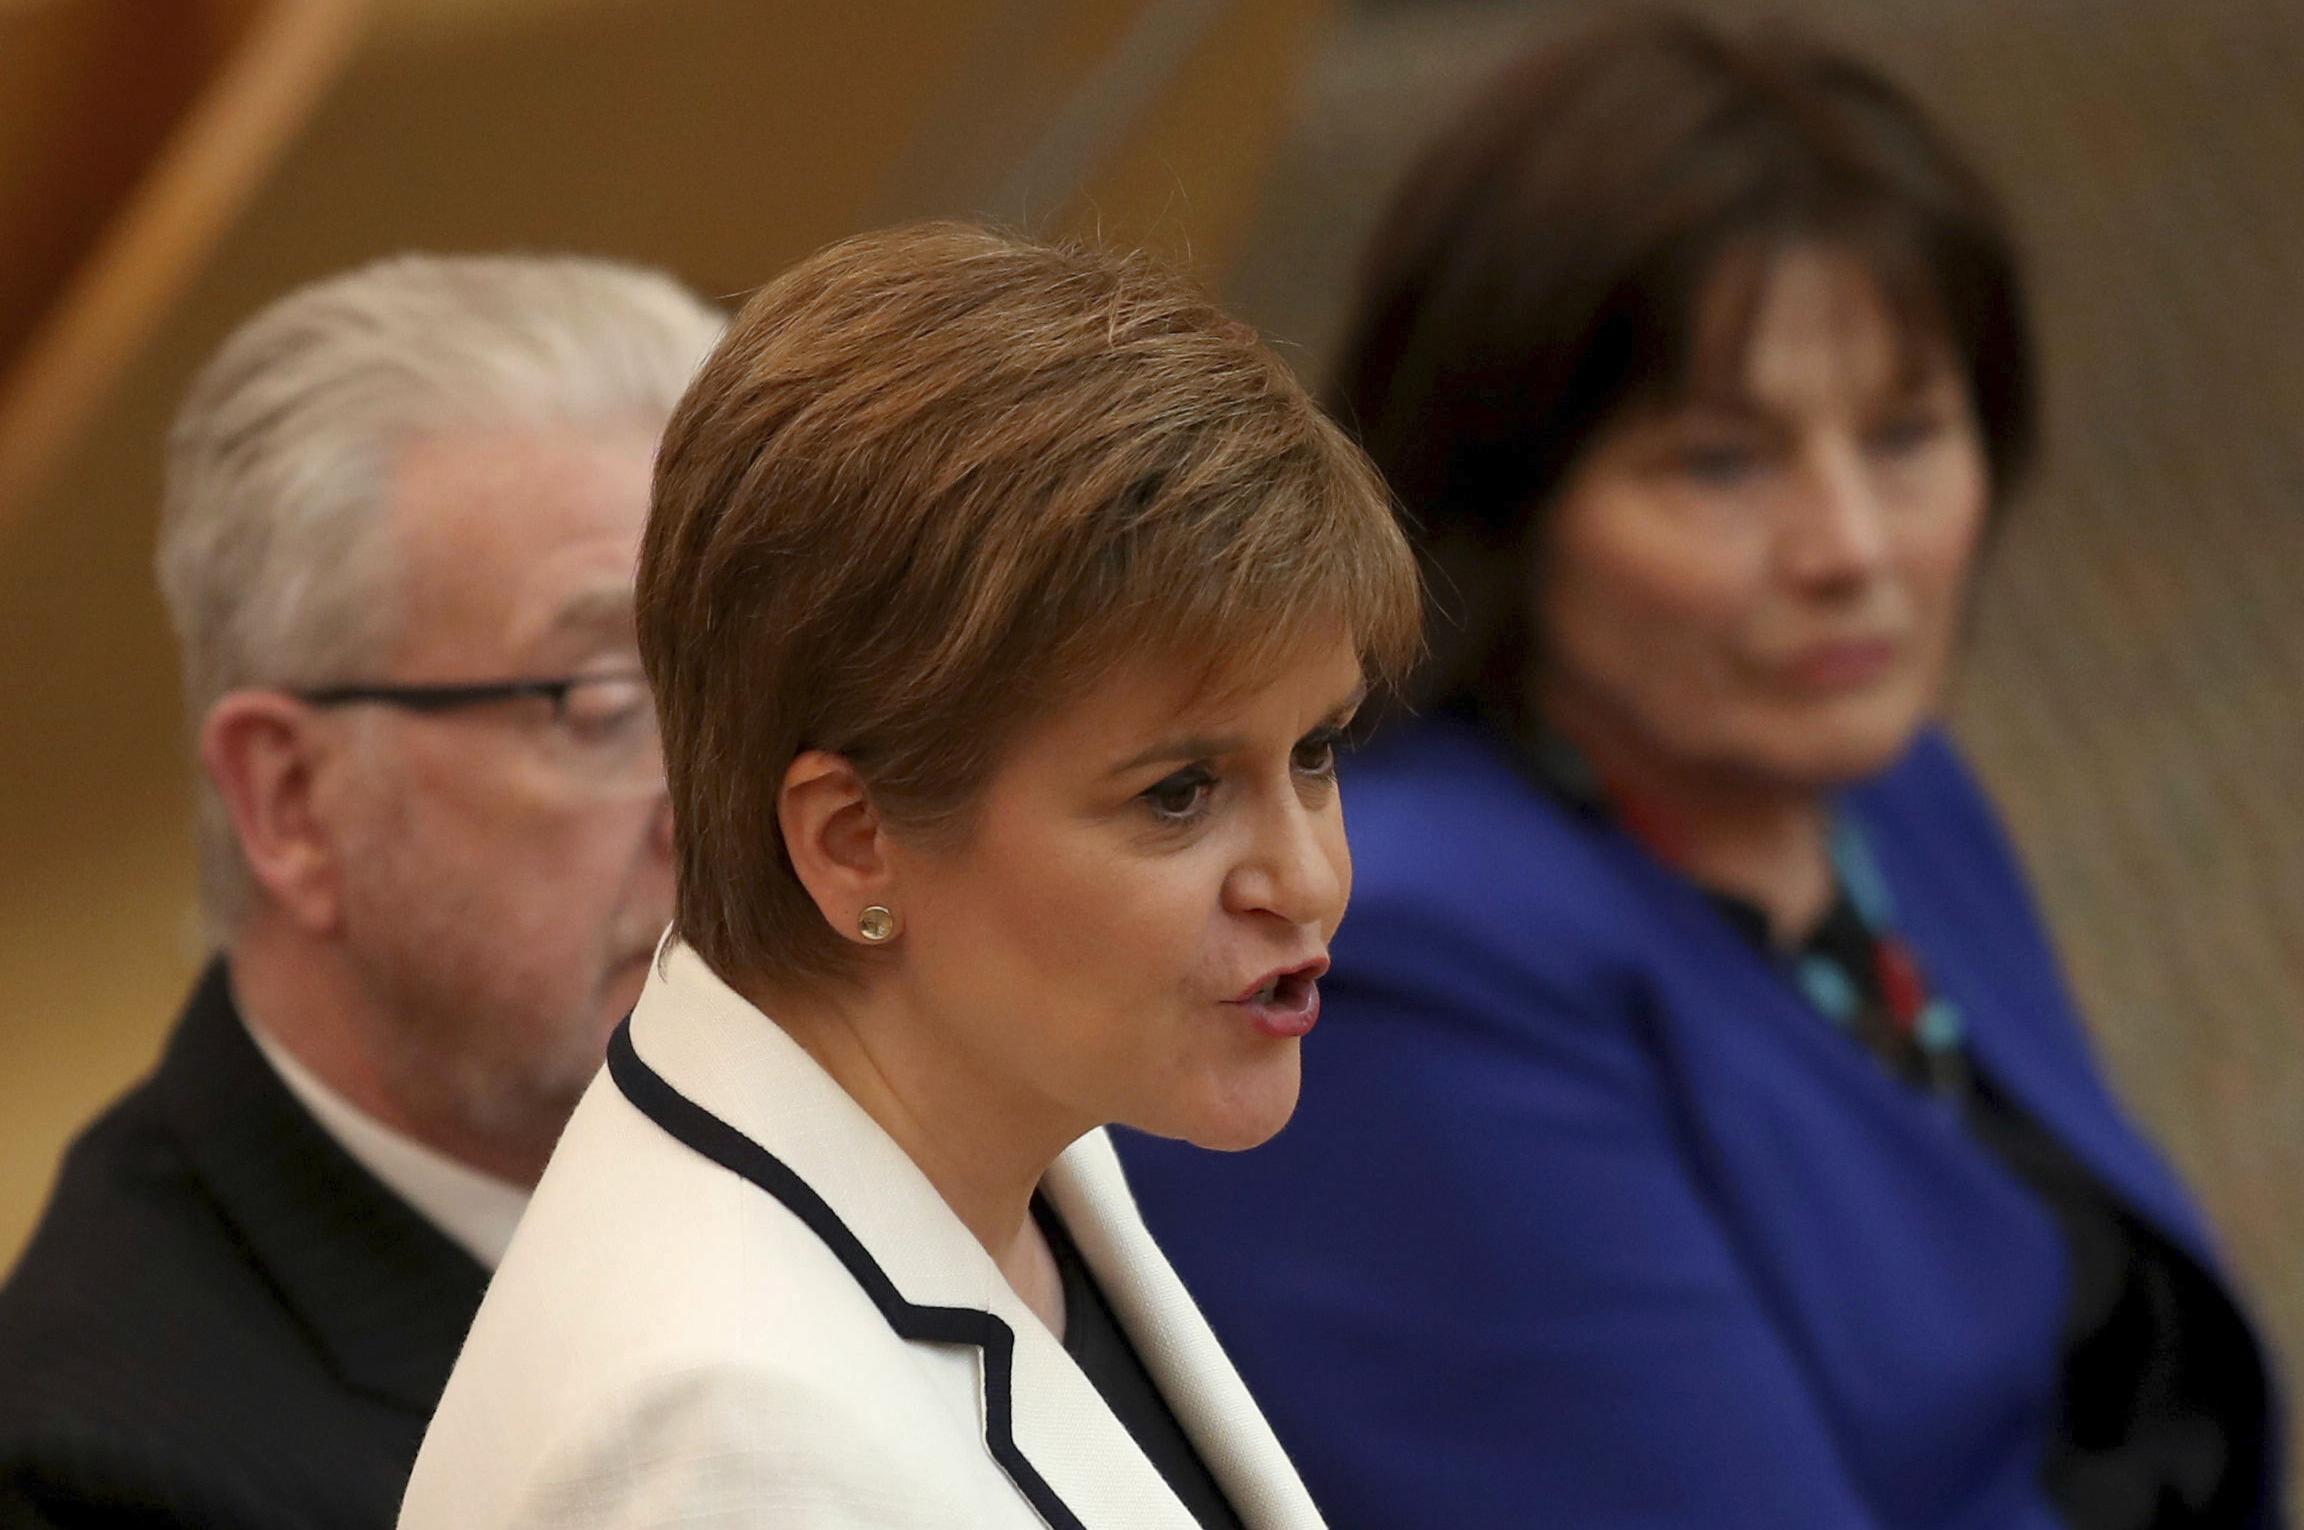 Scottish leader aims to hold new independence vote by 2021